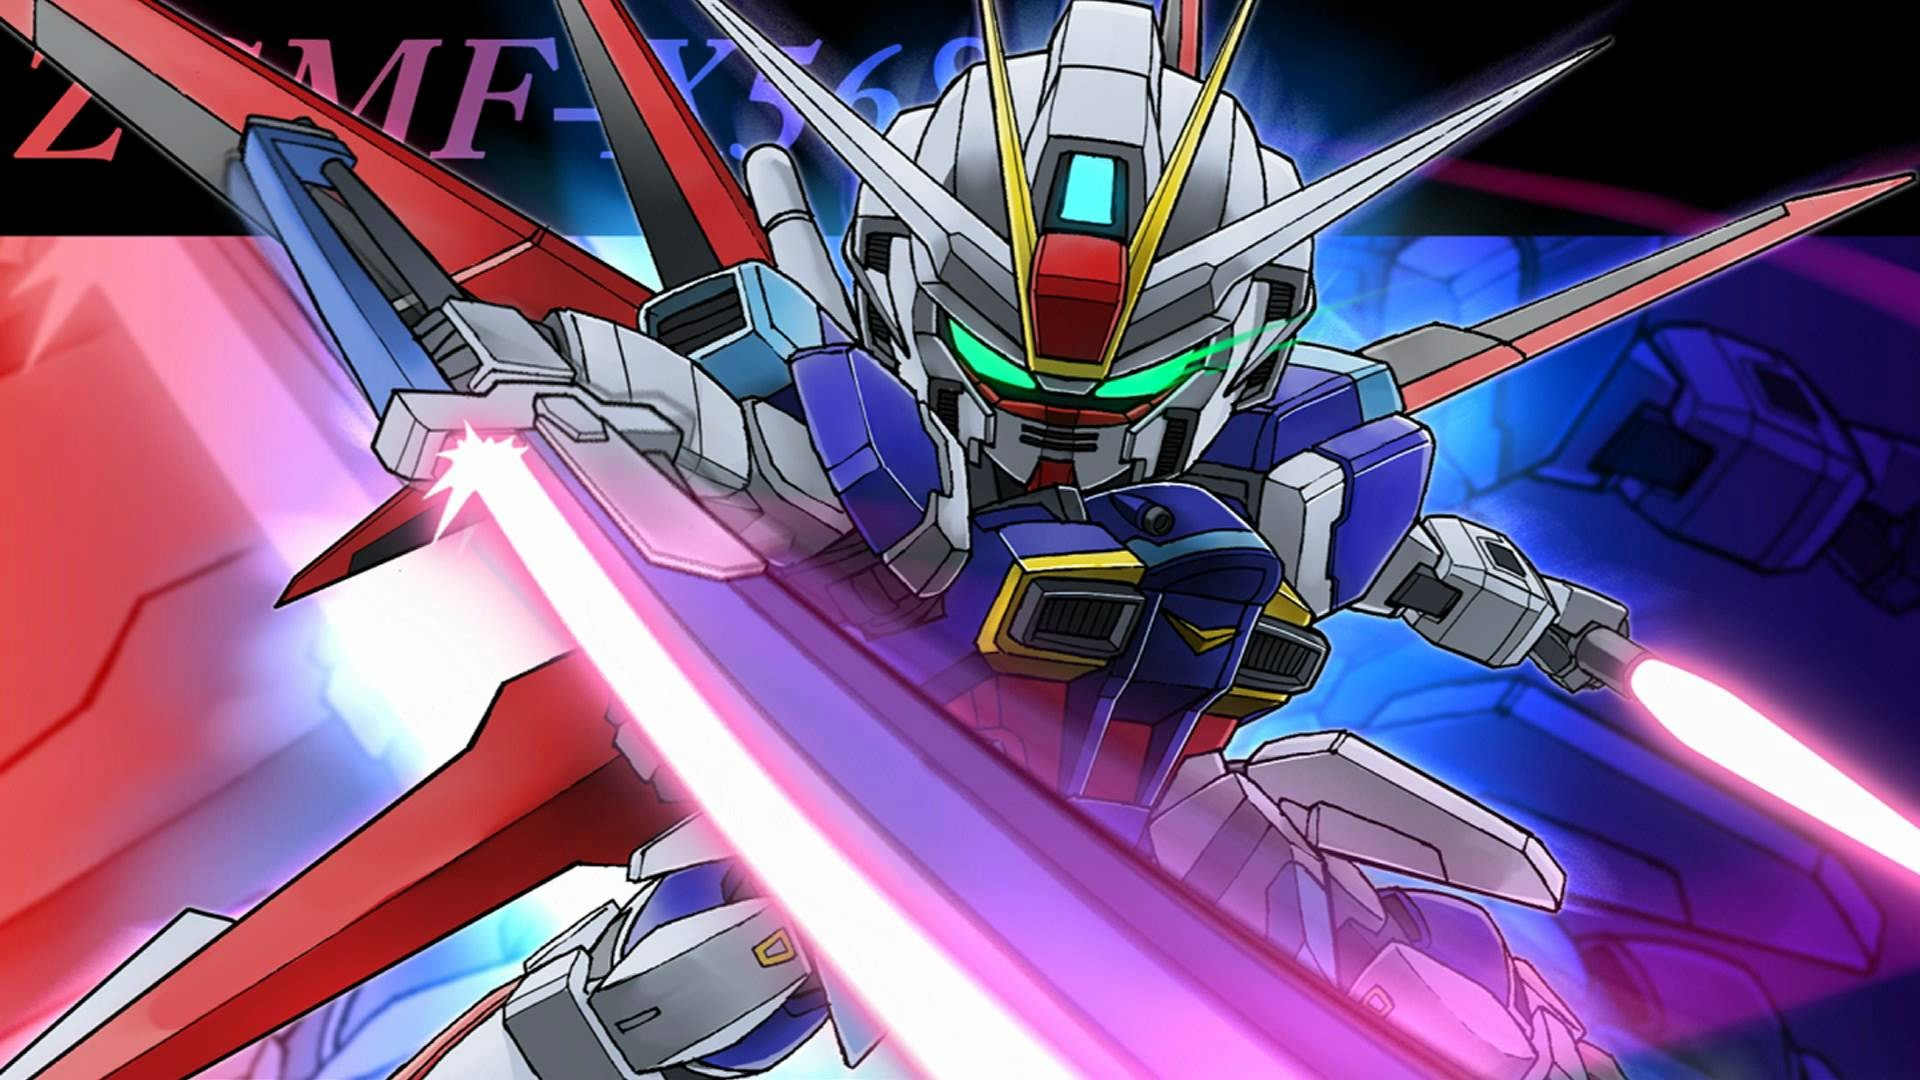 1920x1080 - Mobile Suit Gundam Seed Destiny Wallpapers 32